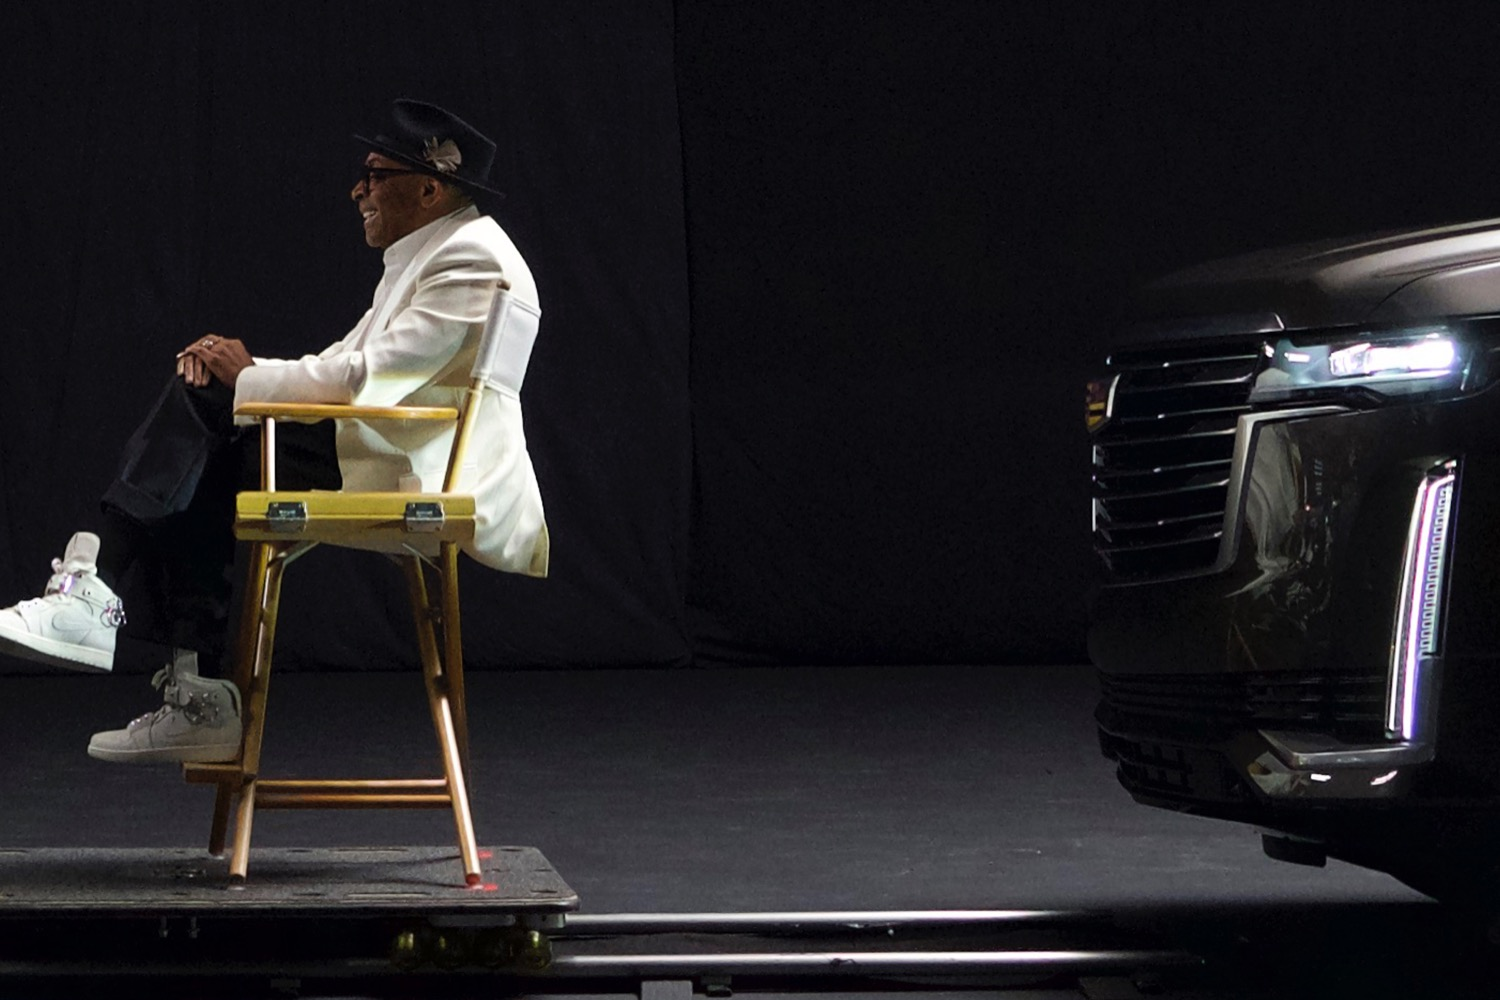 Car spotters have made the first photos of the fifth-gen Cadillac Escalade in December last year, but the manufacturer has so far only shown us some of the cabin (see video). Today, we may finally see the front end of the large SUV - if only barely.